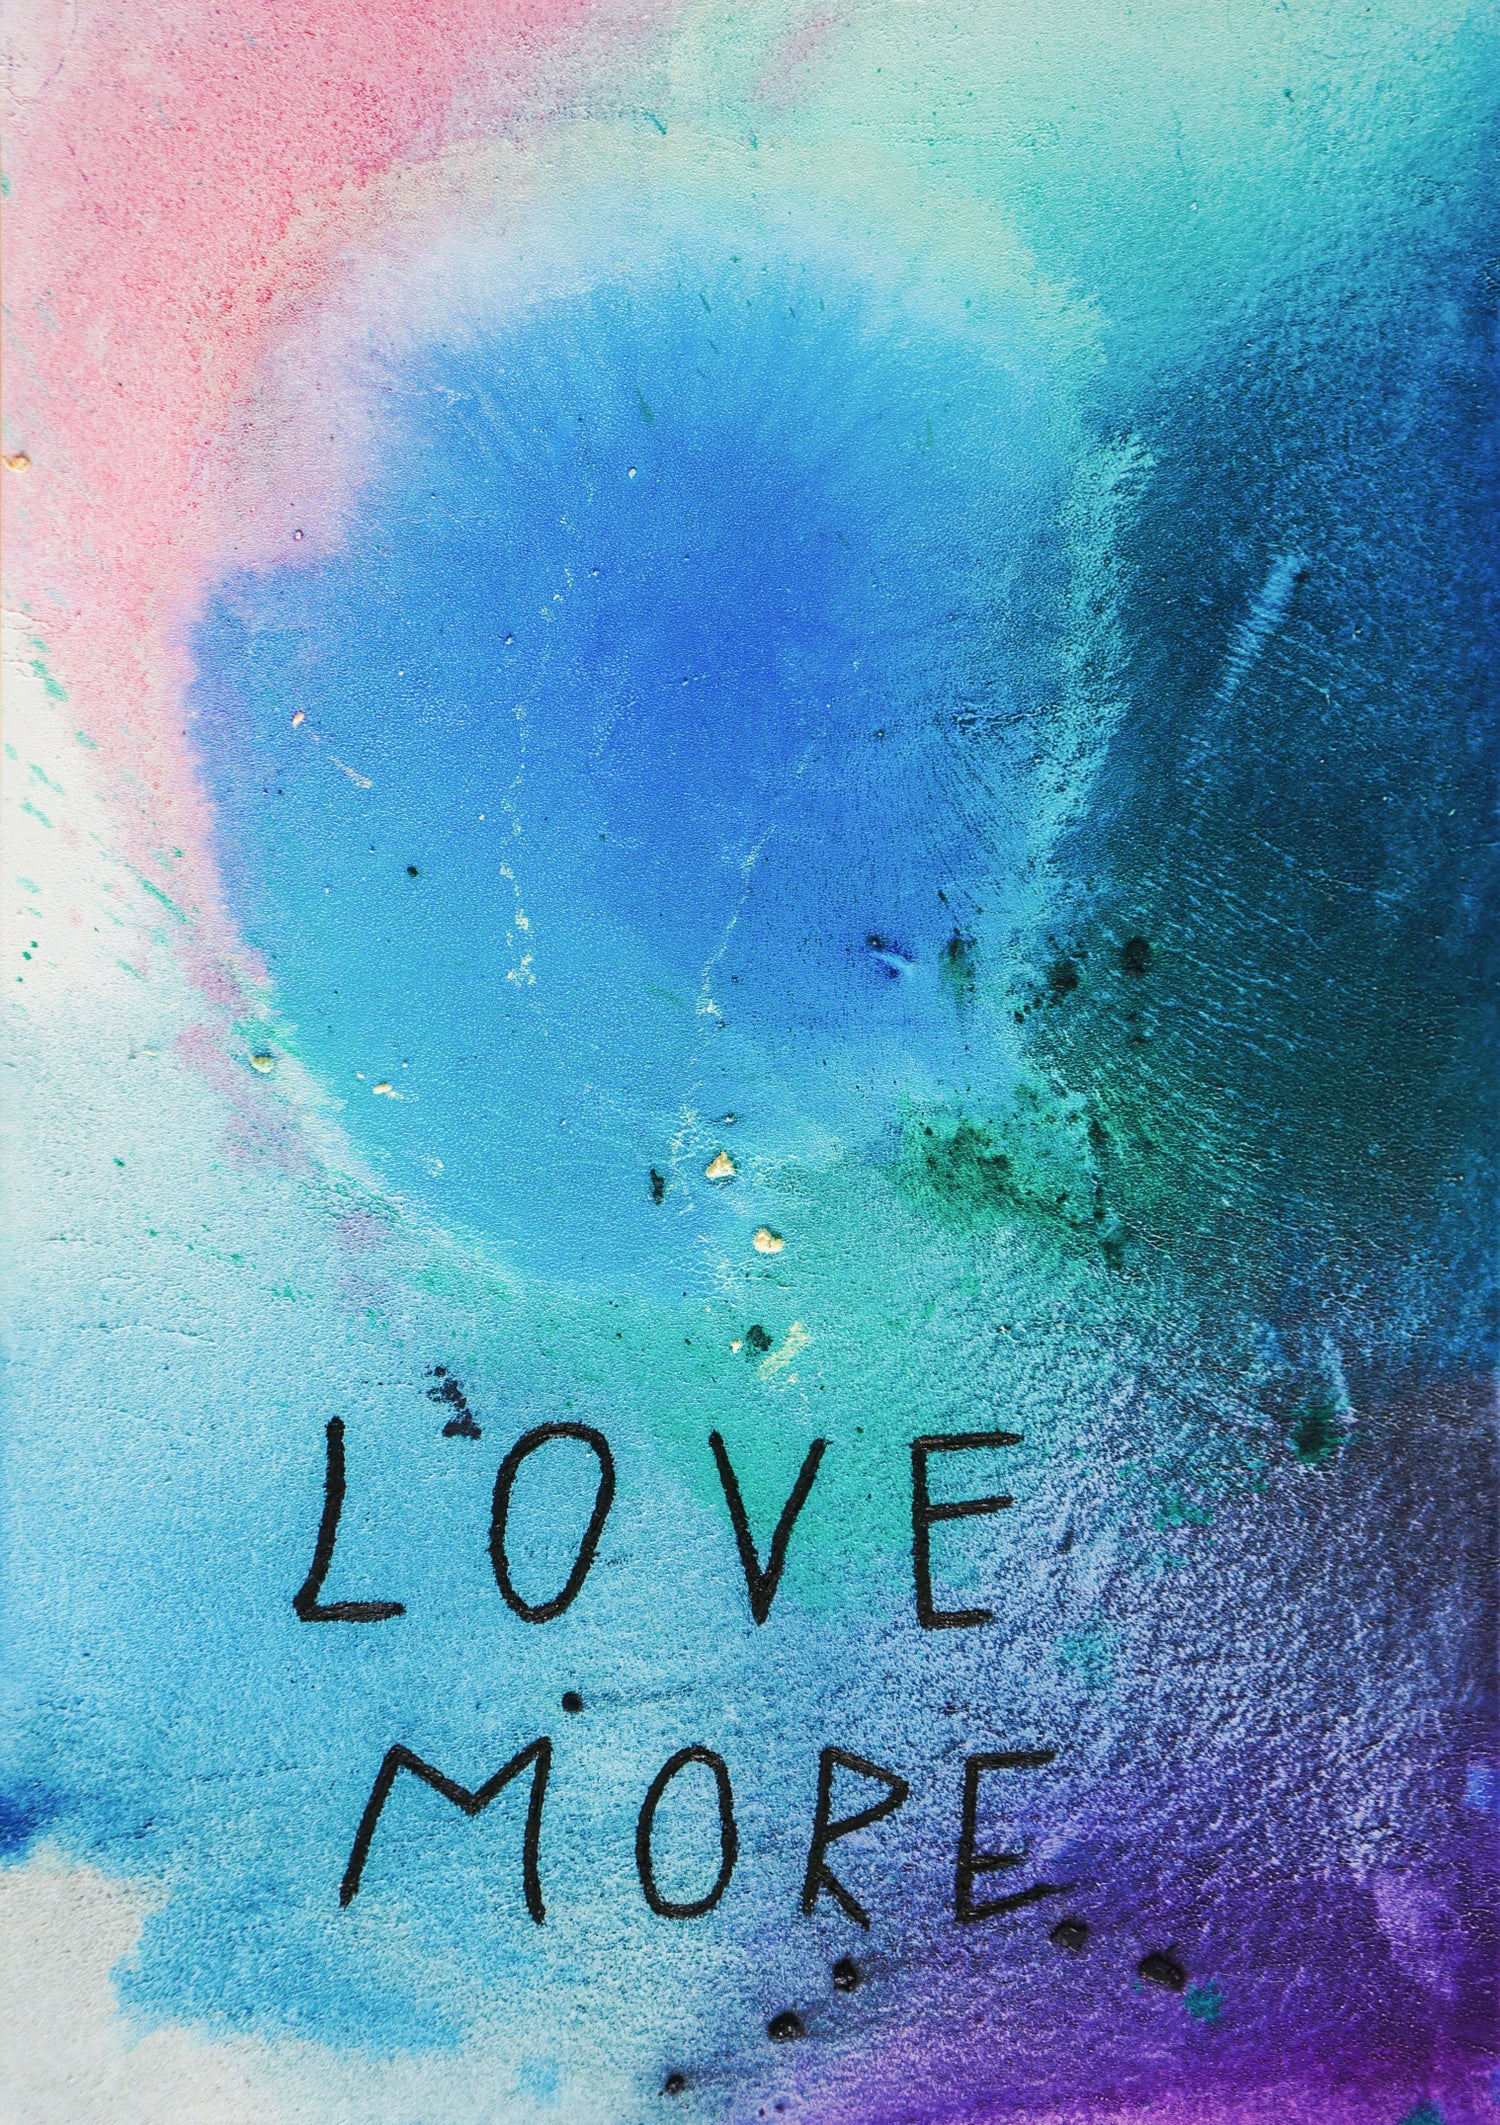 Image of Love More